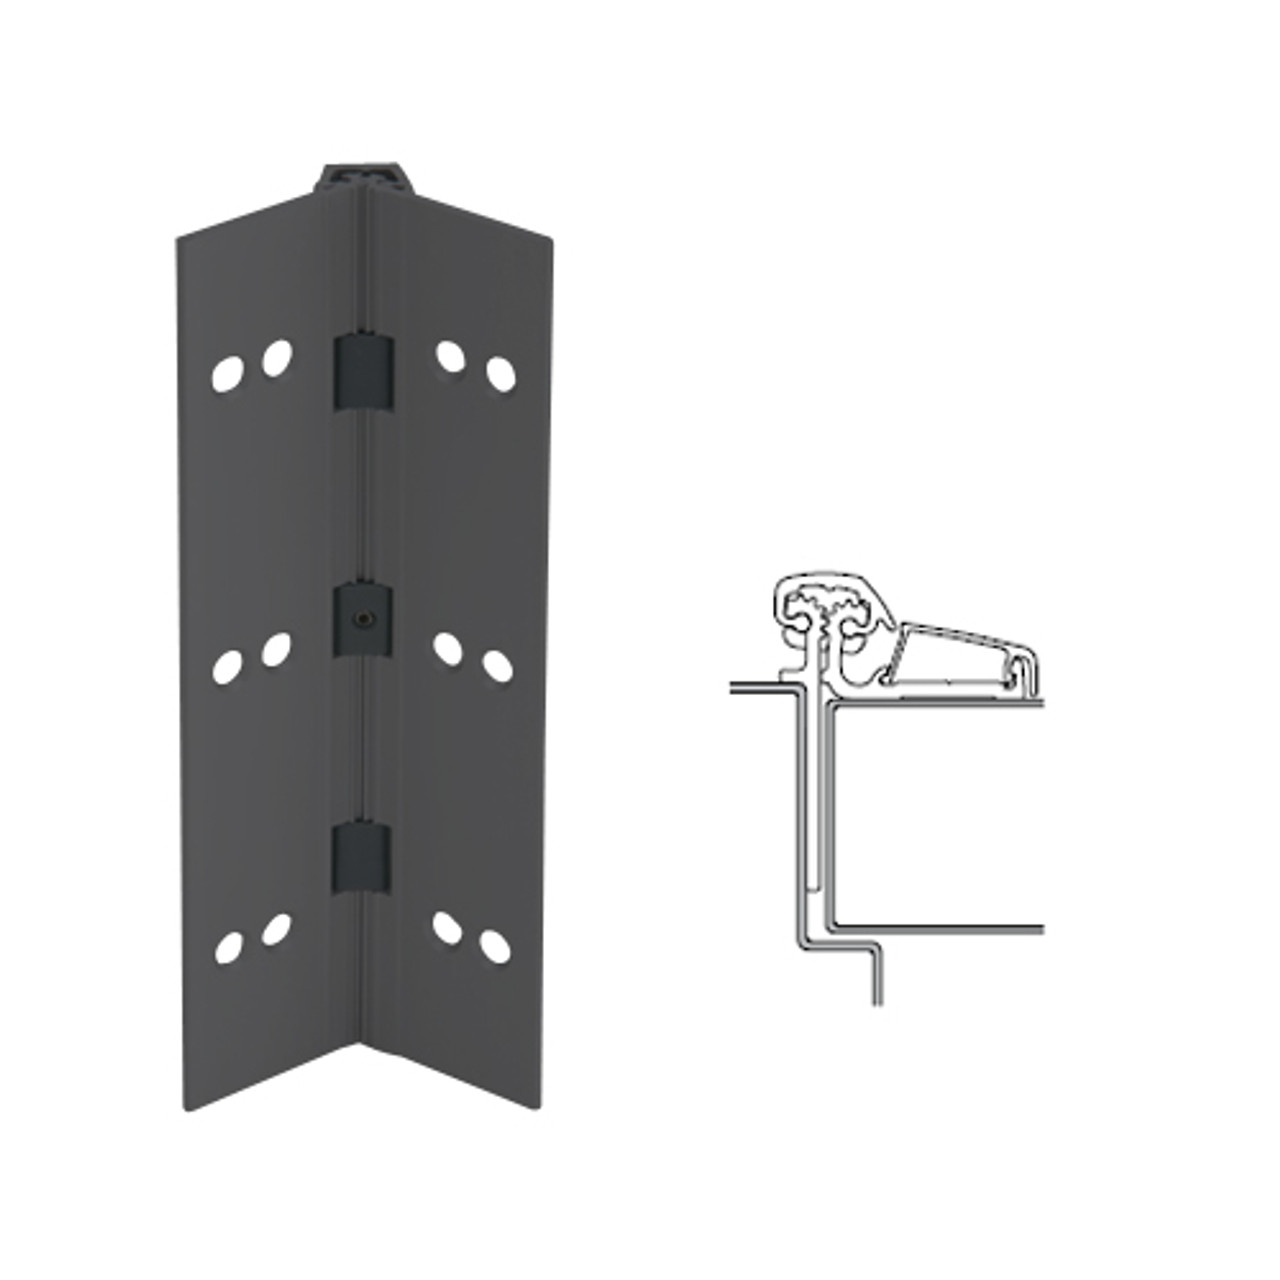 053XY-315AN-95-SECHM IVES Adjustable Half Surface Continuous Geared Hinges with Security Screws - Hex Pin Drive in Anodized Black